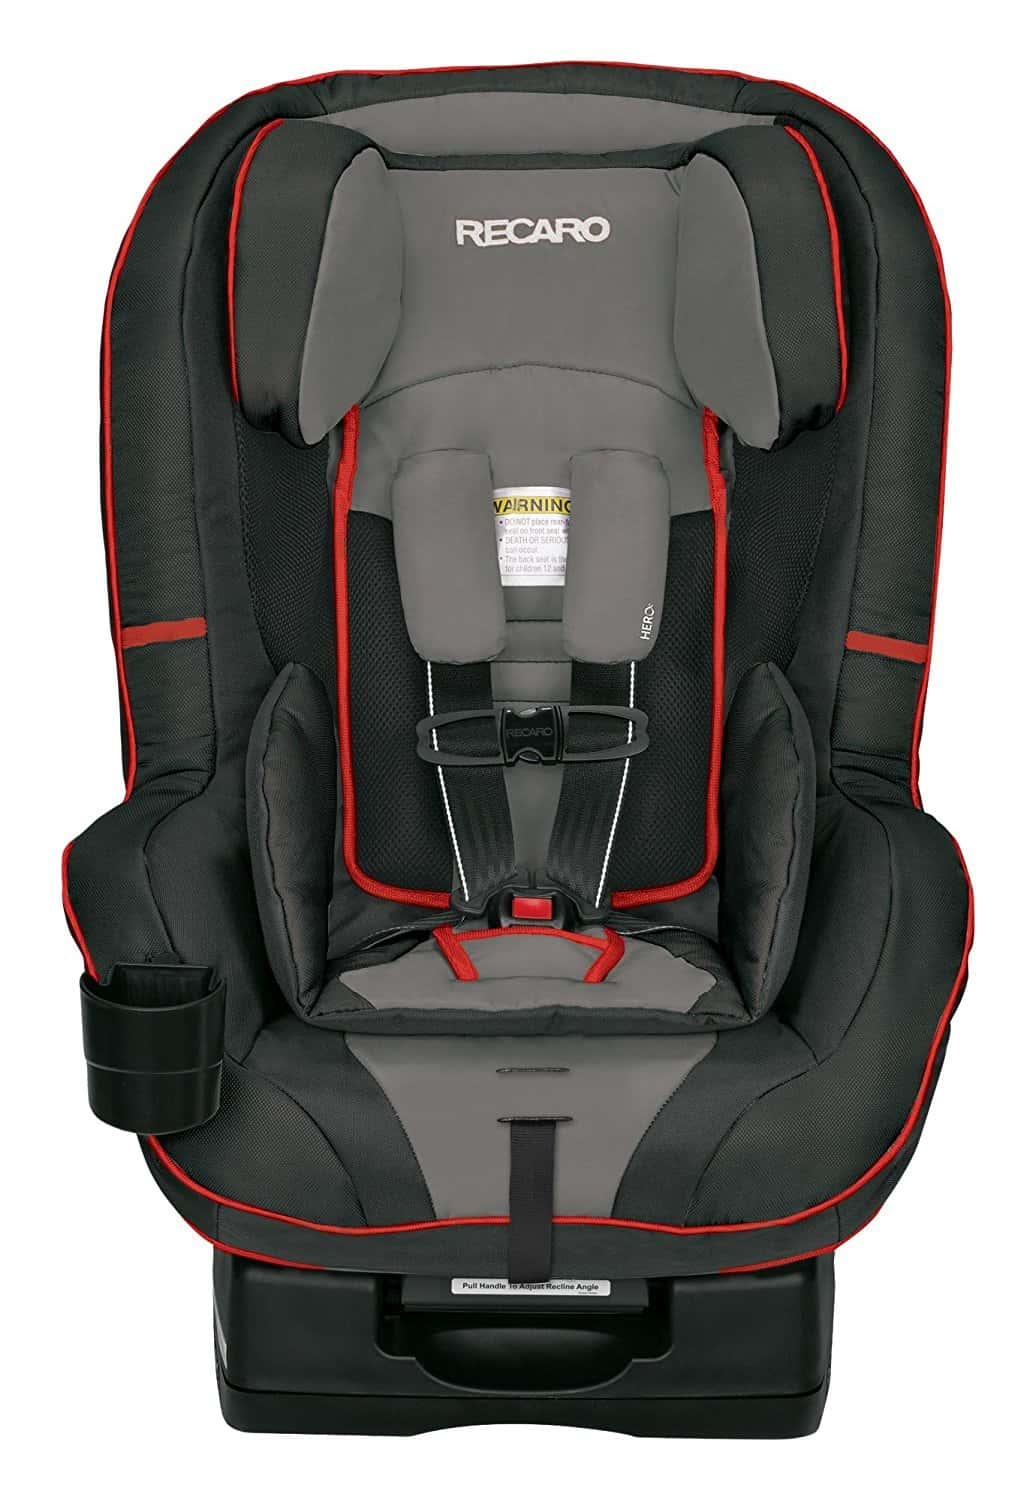 Eddie bauer car seat coupon code